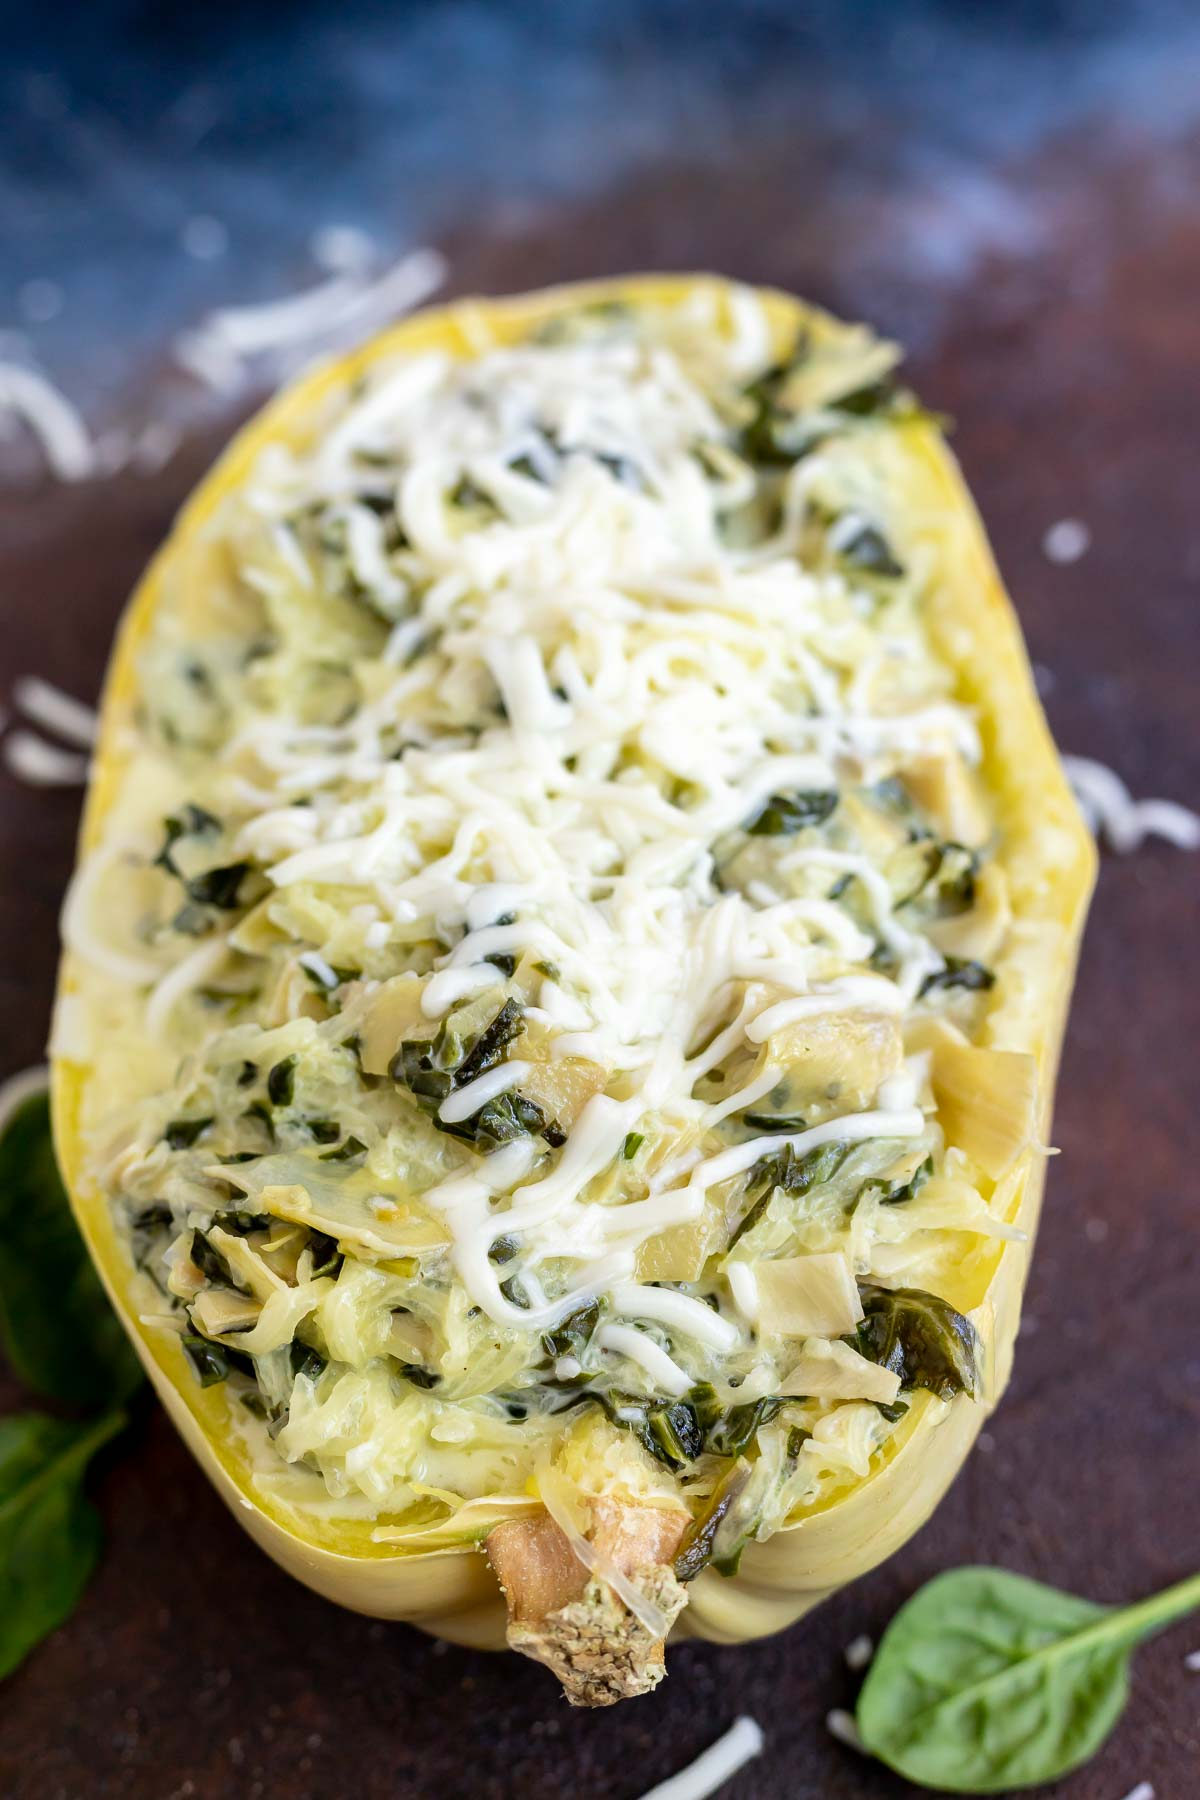 stuffed spaghetti squash topped with melted mozzarella